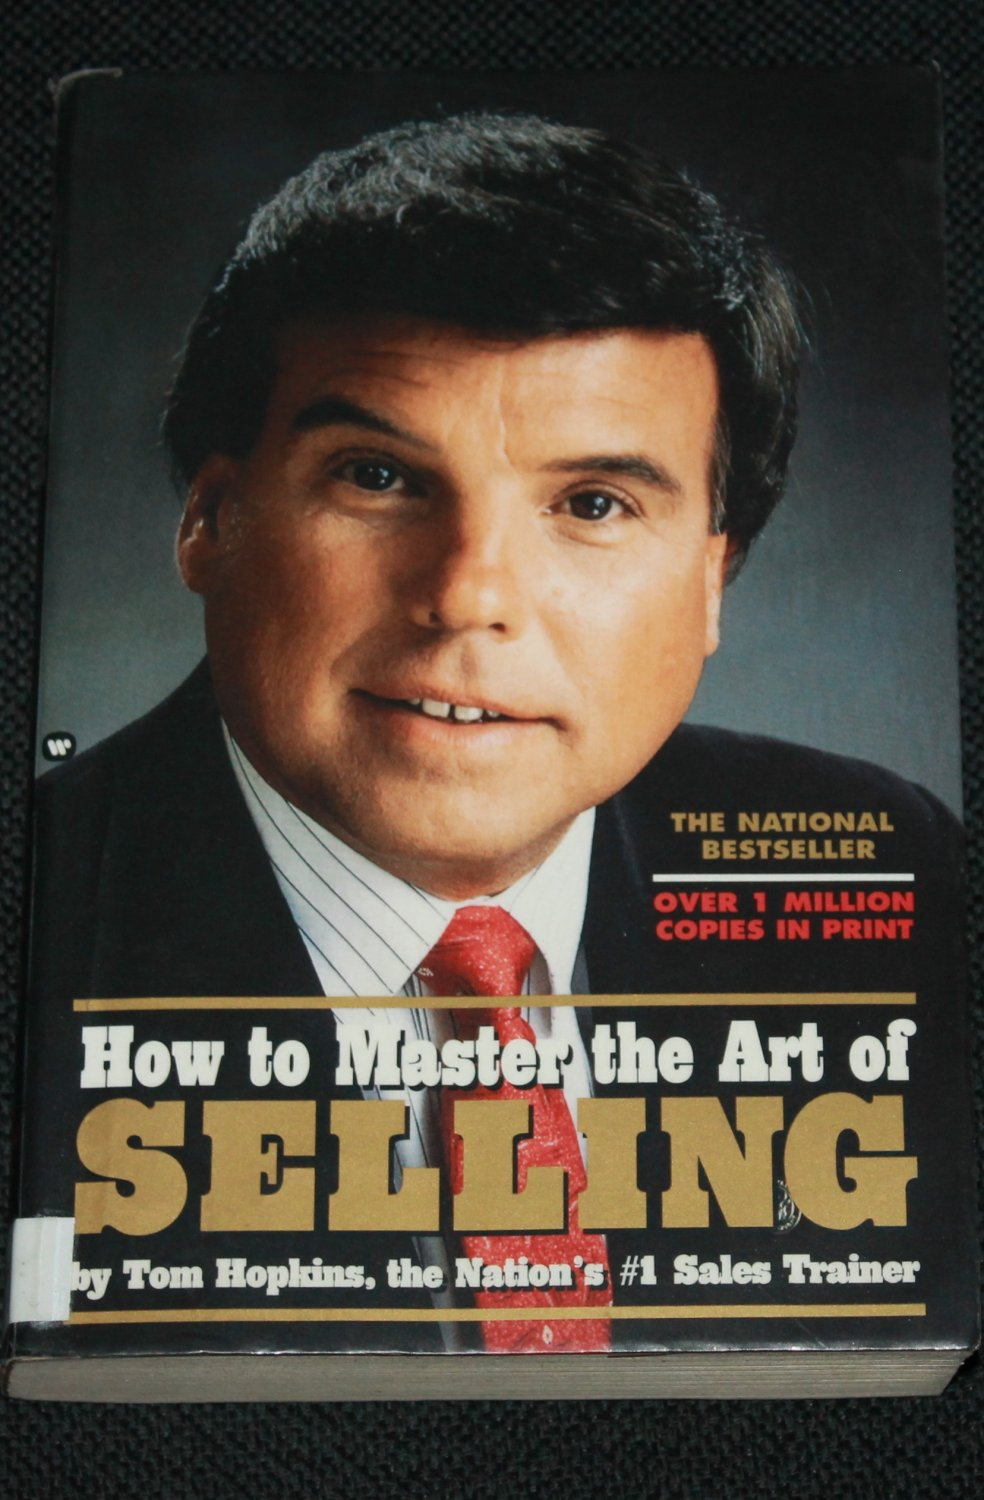 How to Master the Art of Selling - book by Tom Hopkins business success sales book